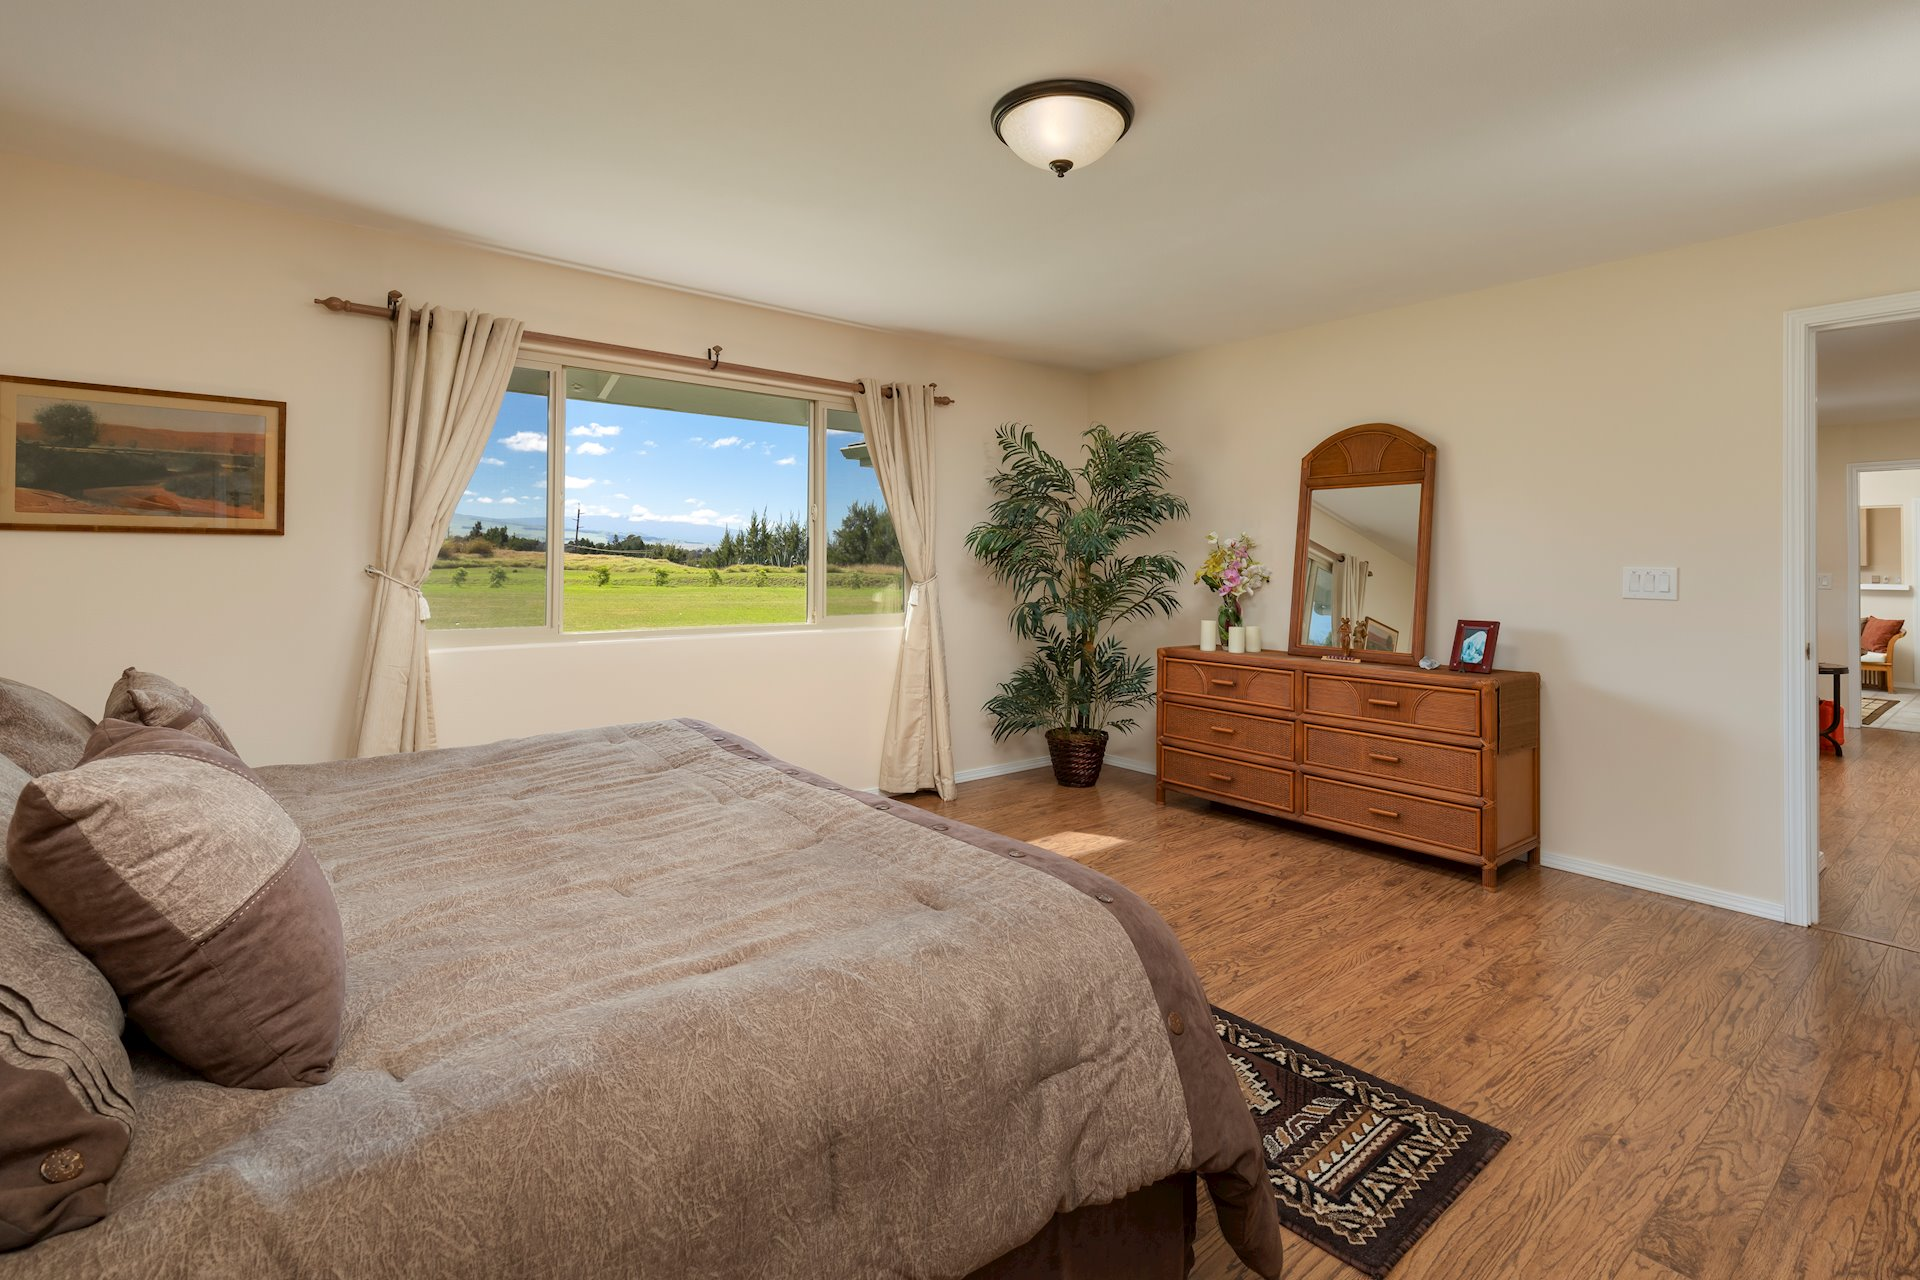 Master bedroom with more views